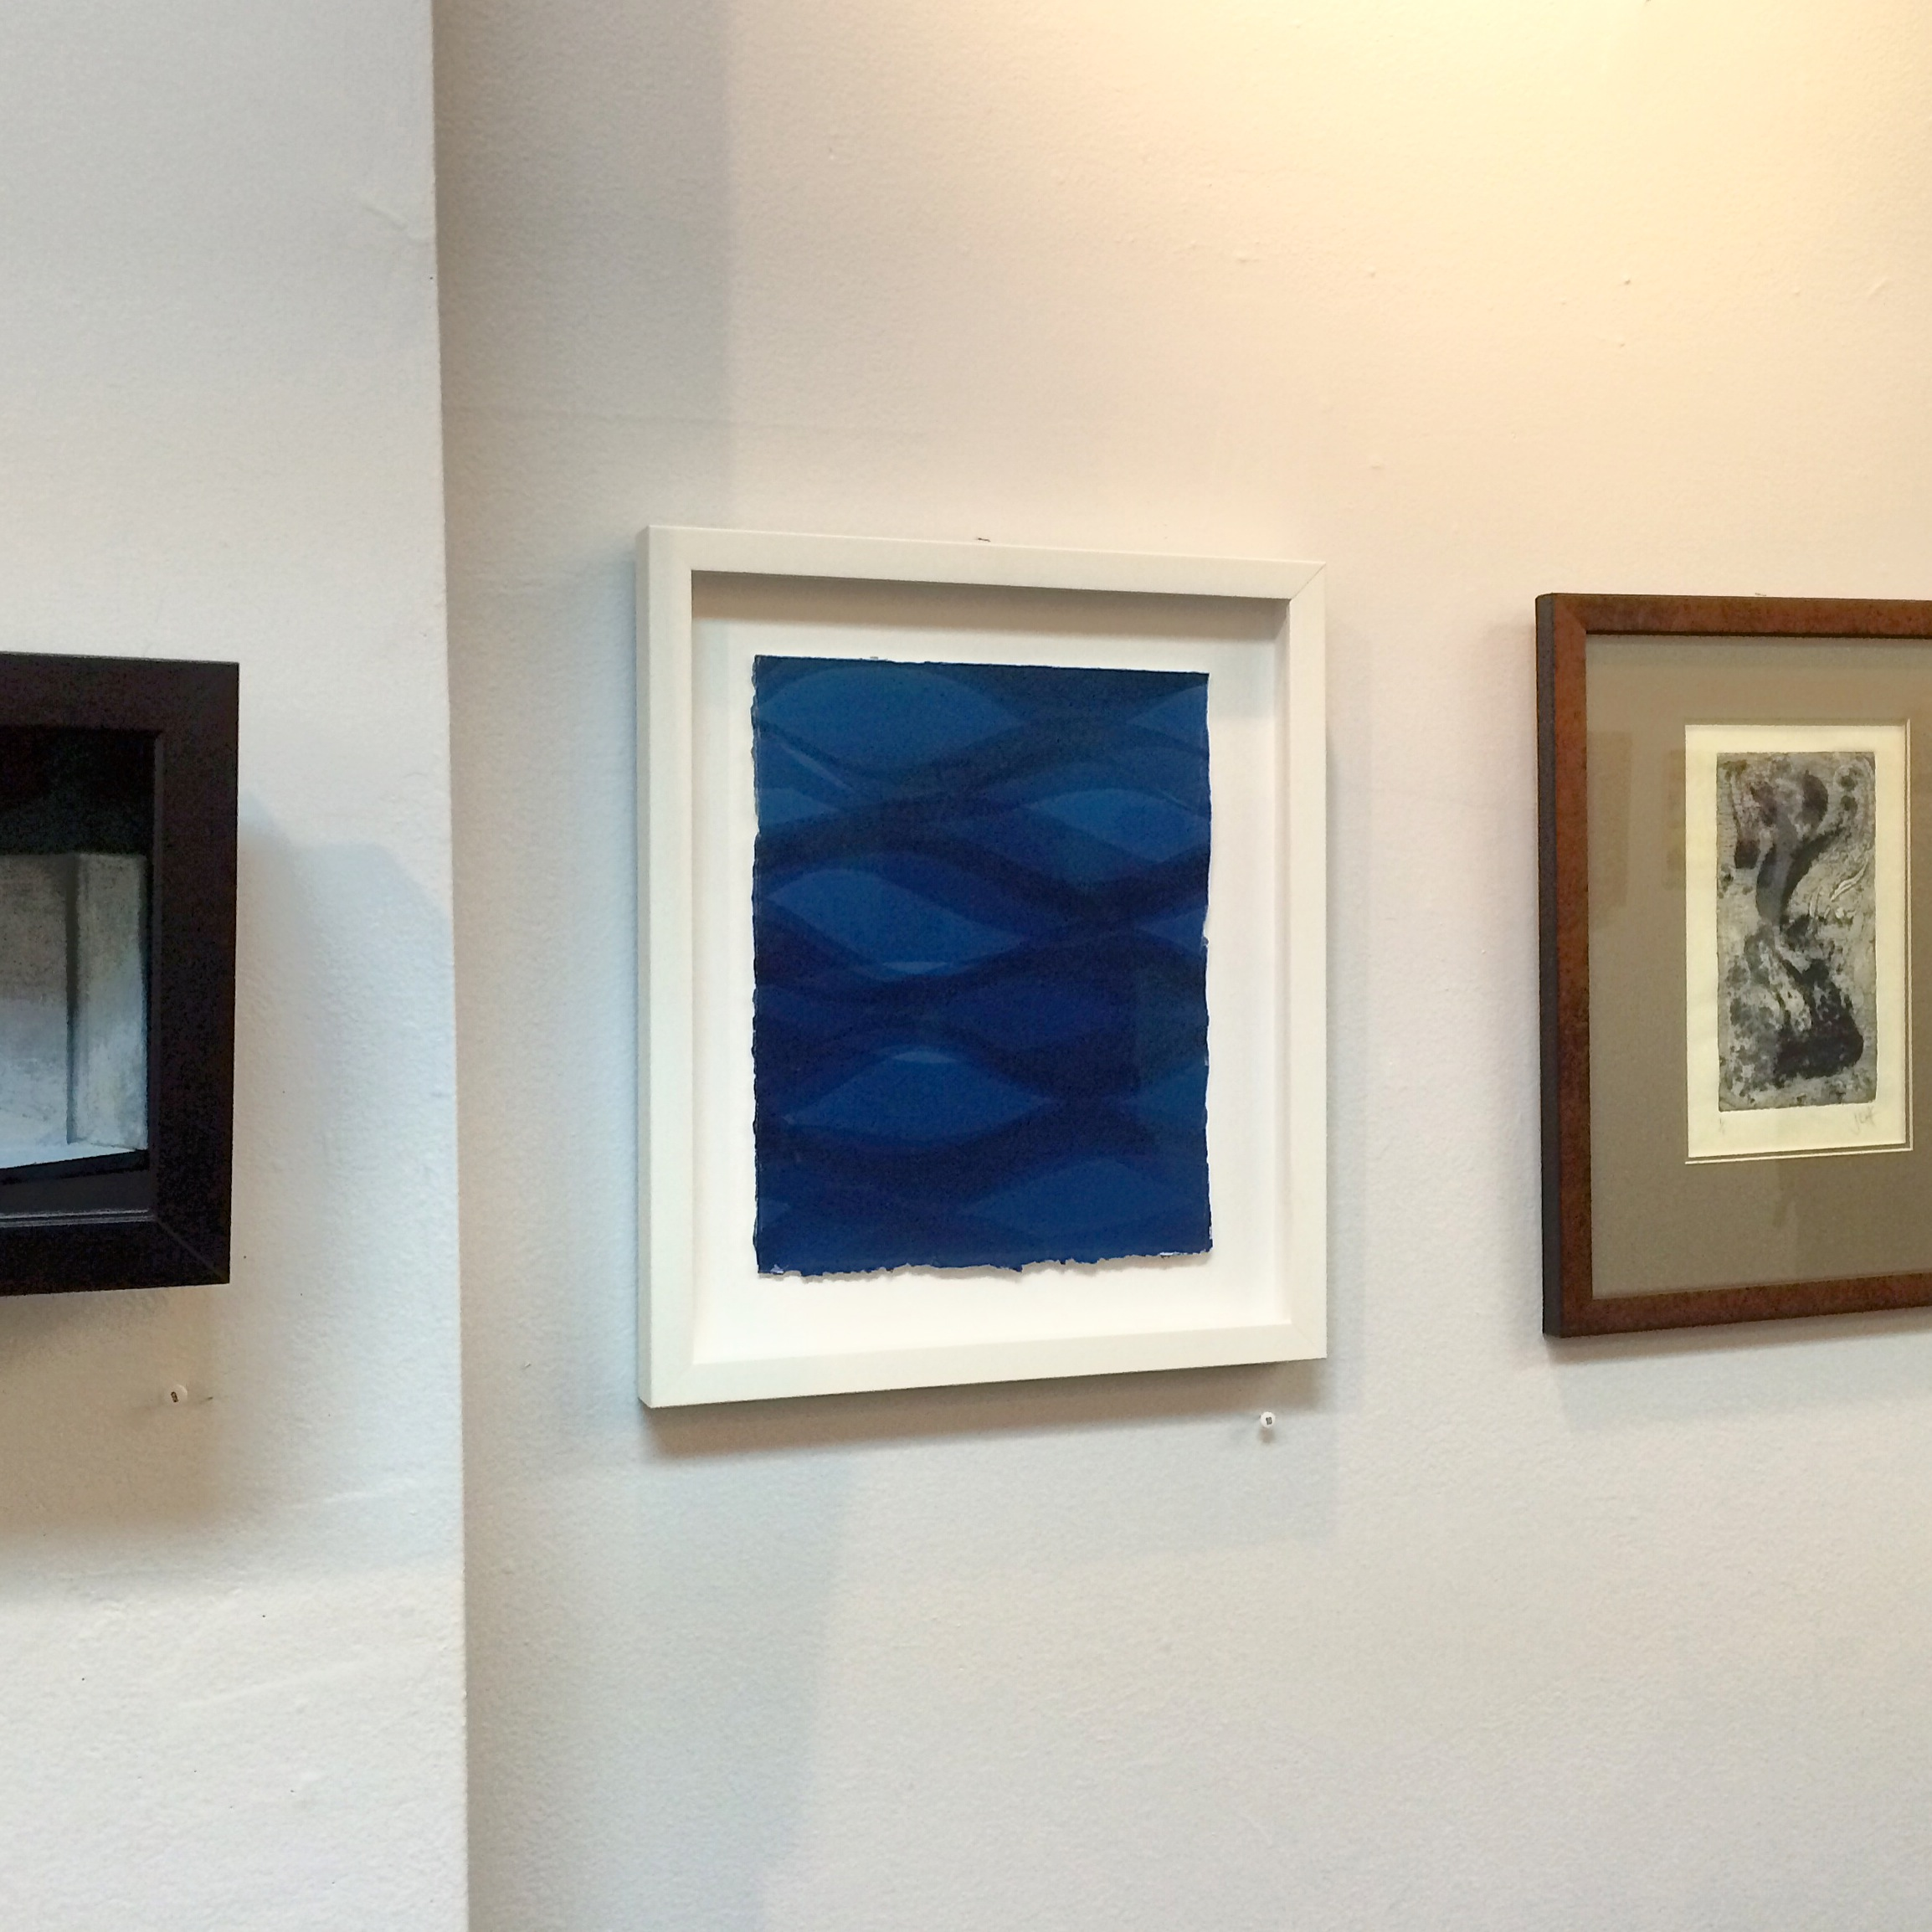 Currents A in Small Works Exhibition at N.A.W.A. Gallery